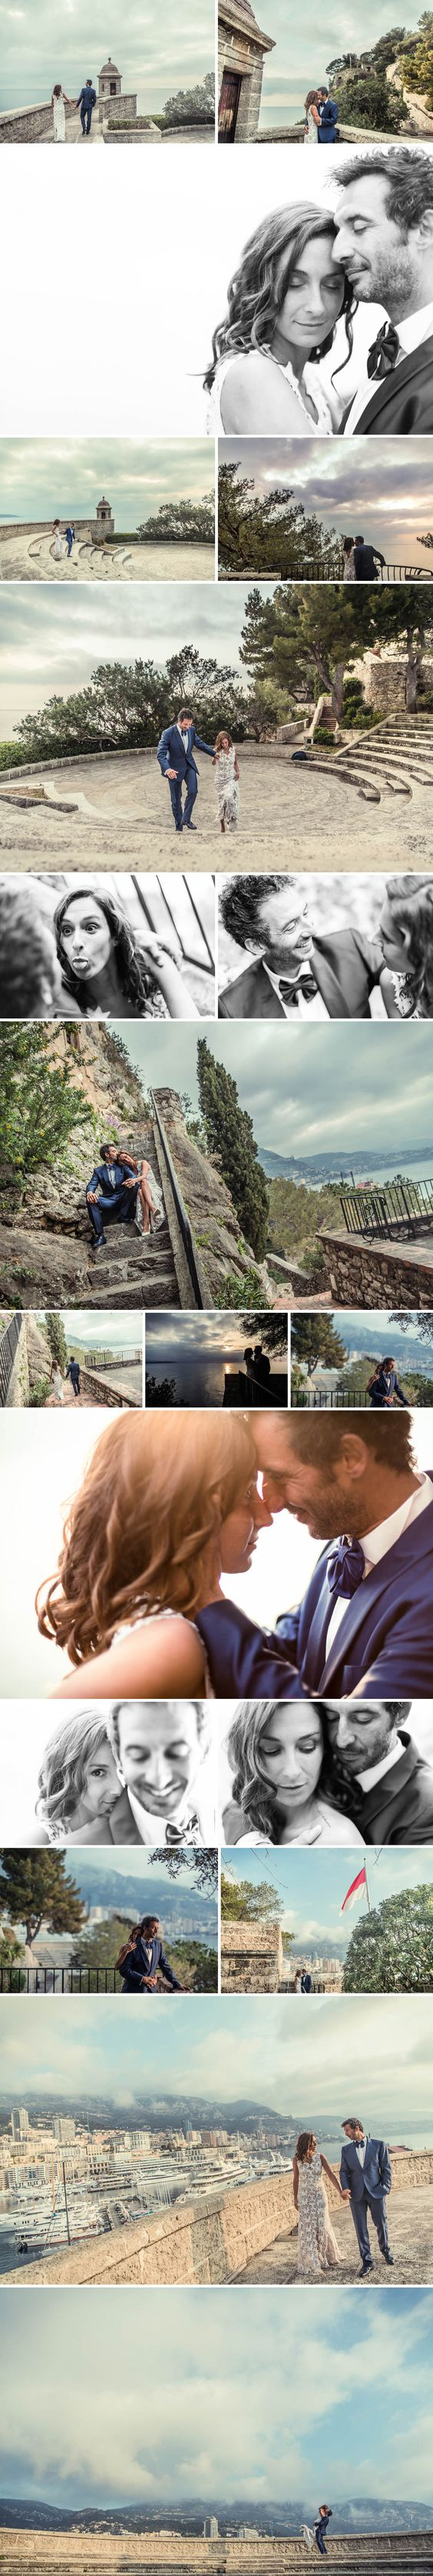 wedding mariage monaco montecarlo photograph